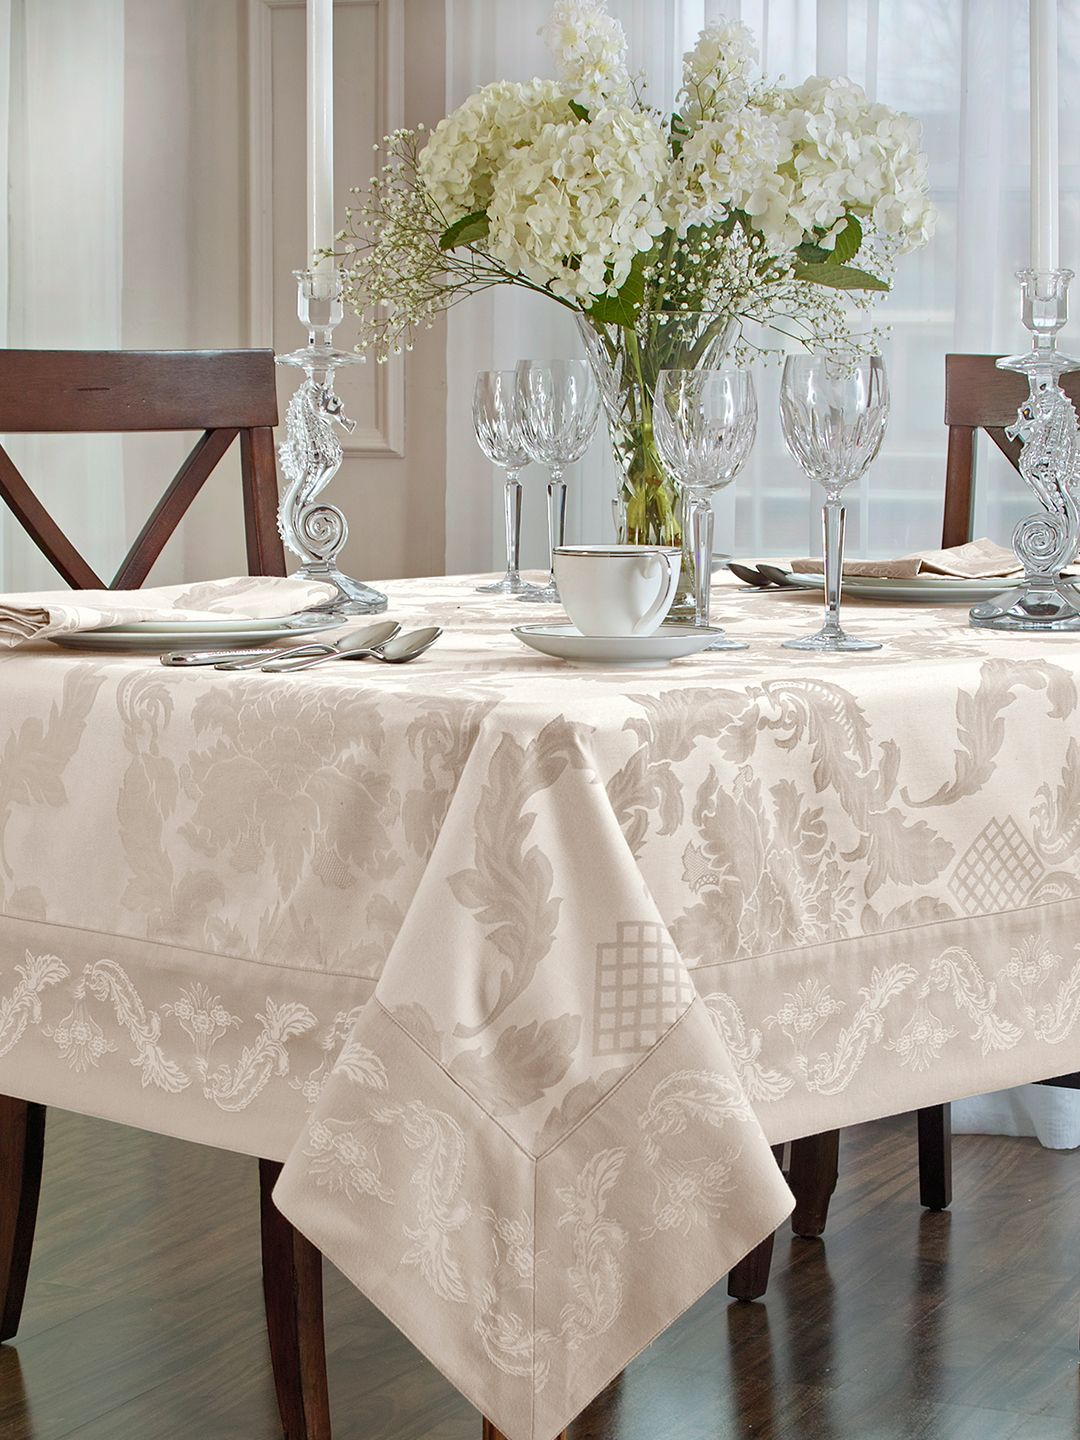 These Thanksgiving Tablecloths Make For An Unforgettable Holiday